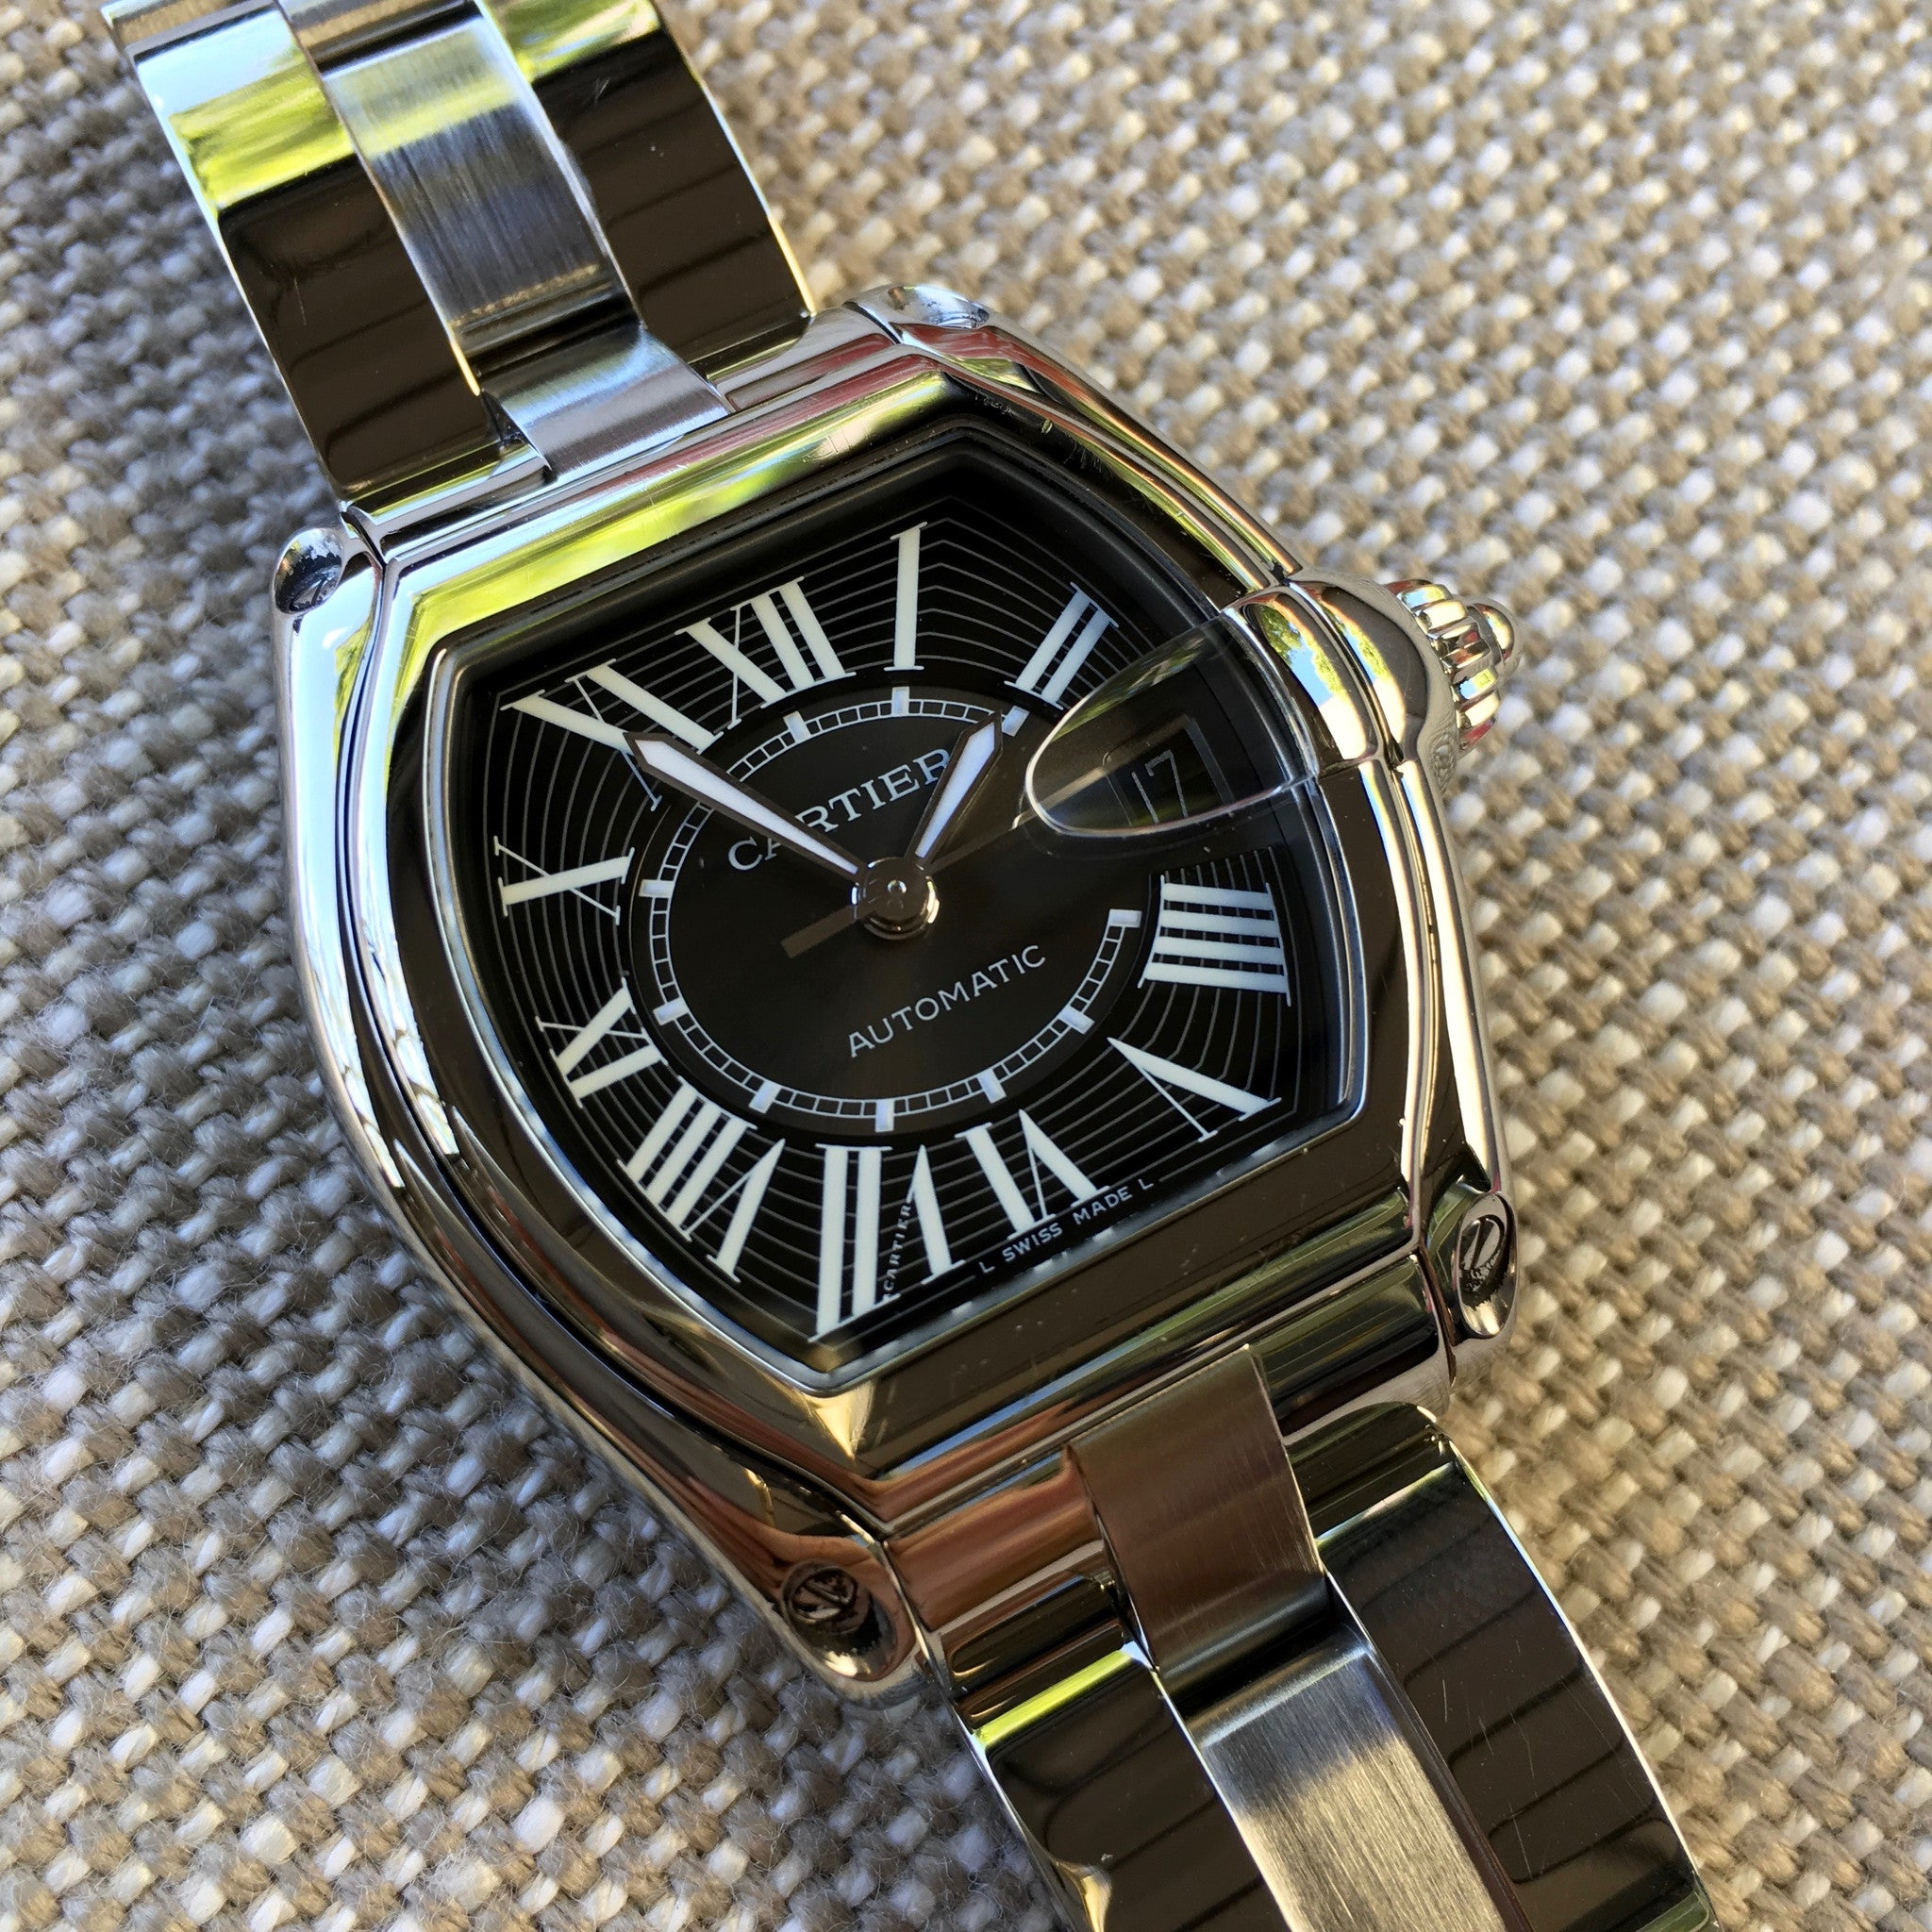 Cartier Roadster XL 2510 Steel Roman Large Size Black Automatic Watch - Hashtag Watch Company